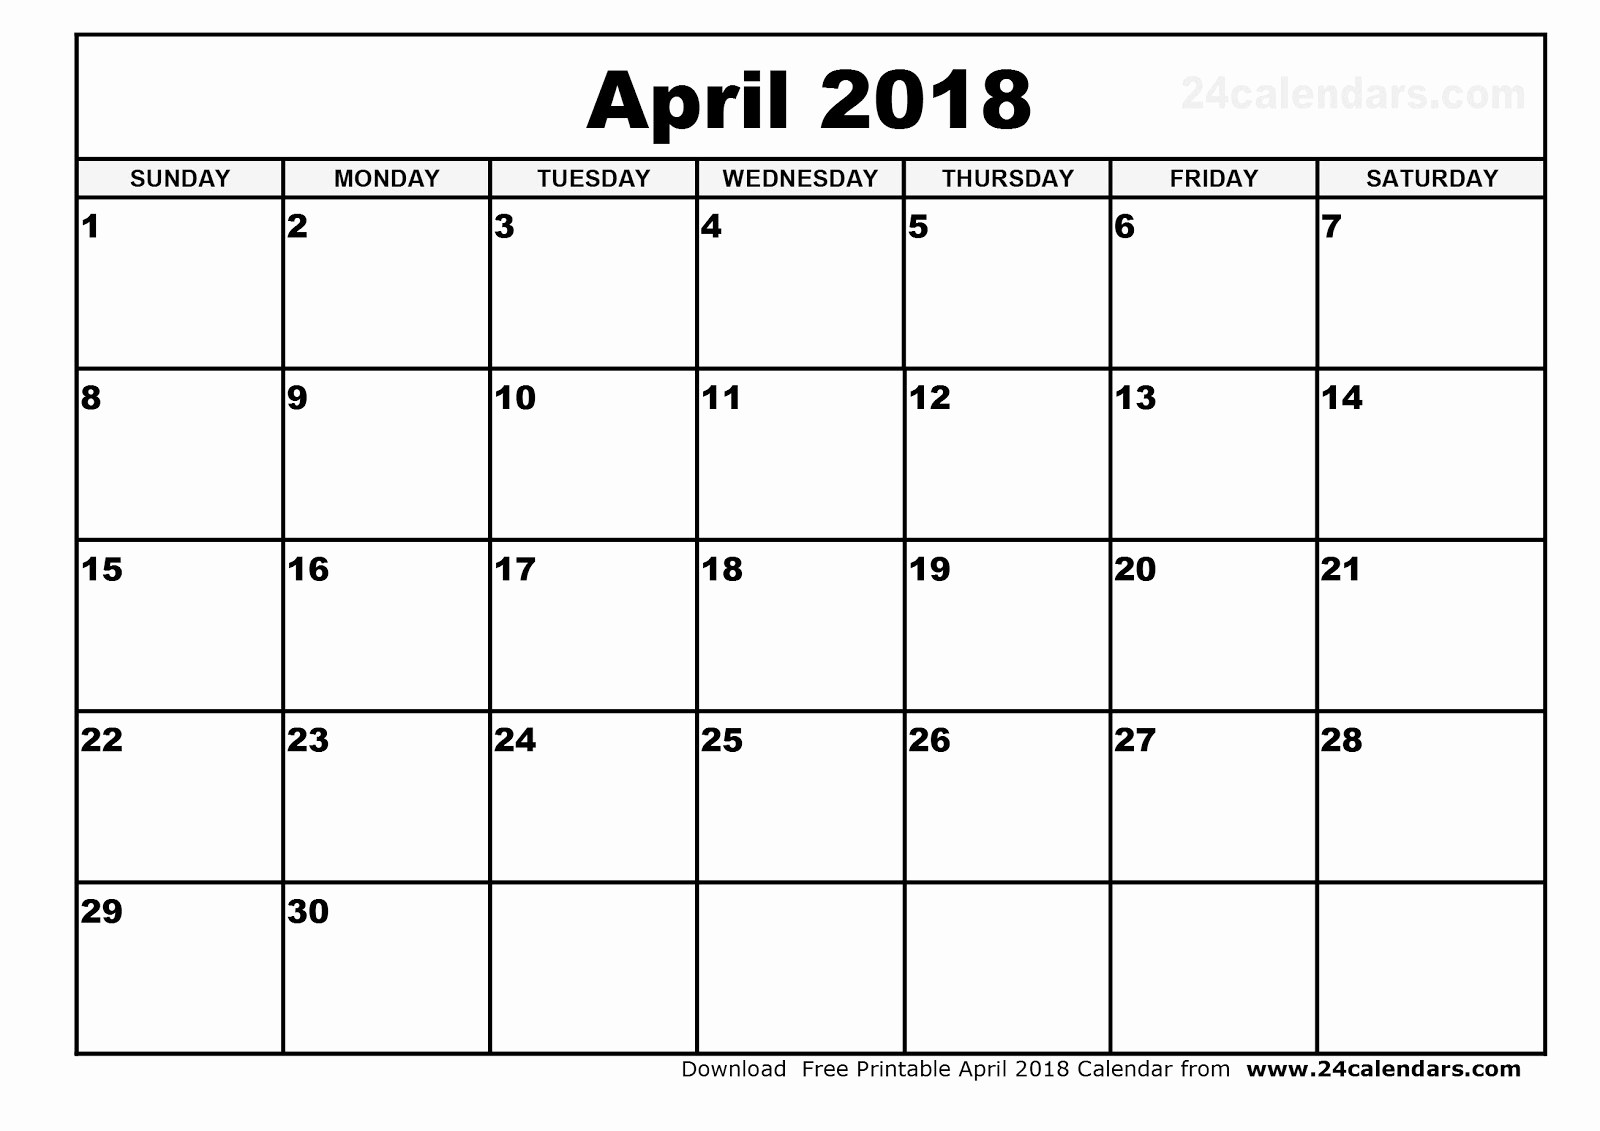 Blank April 2018 Calendar Template Lovely Printable Calendar 2018 [free] April 2018 Printable